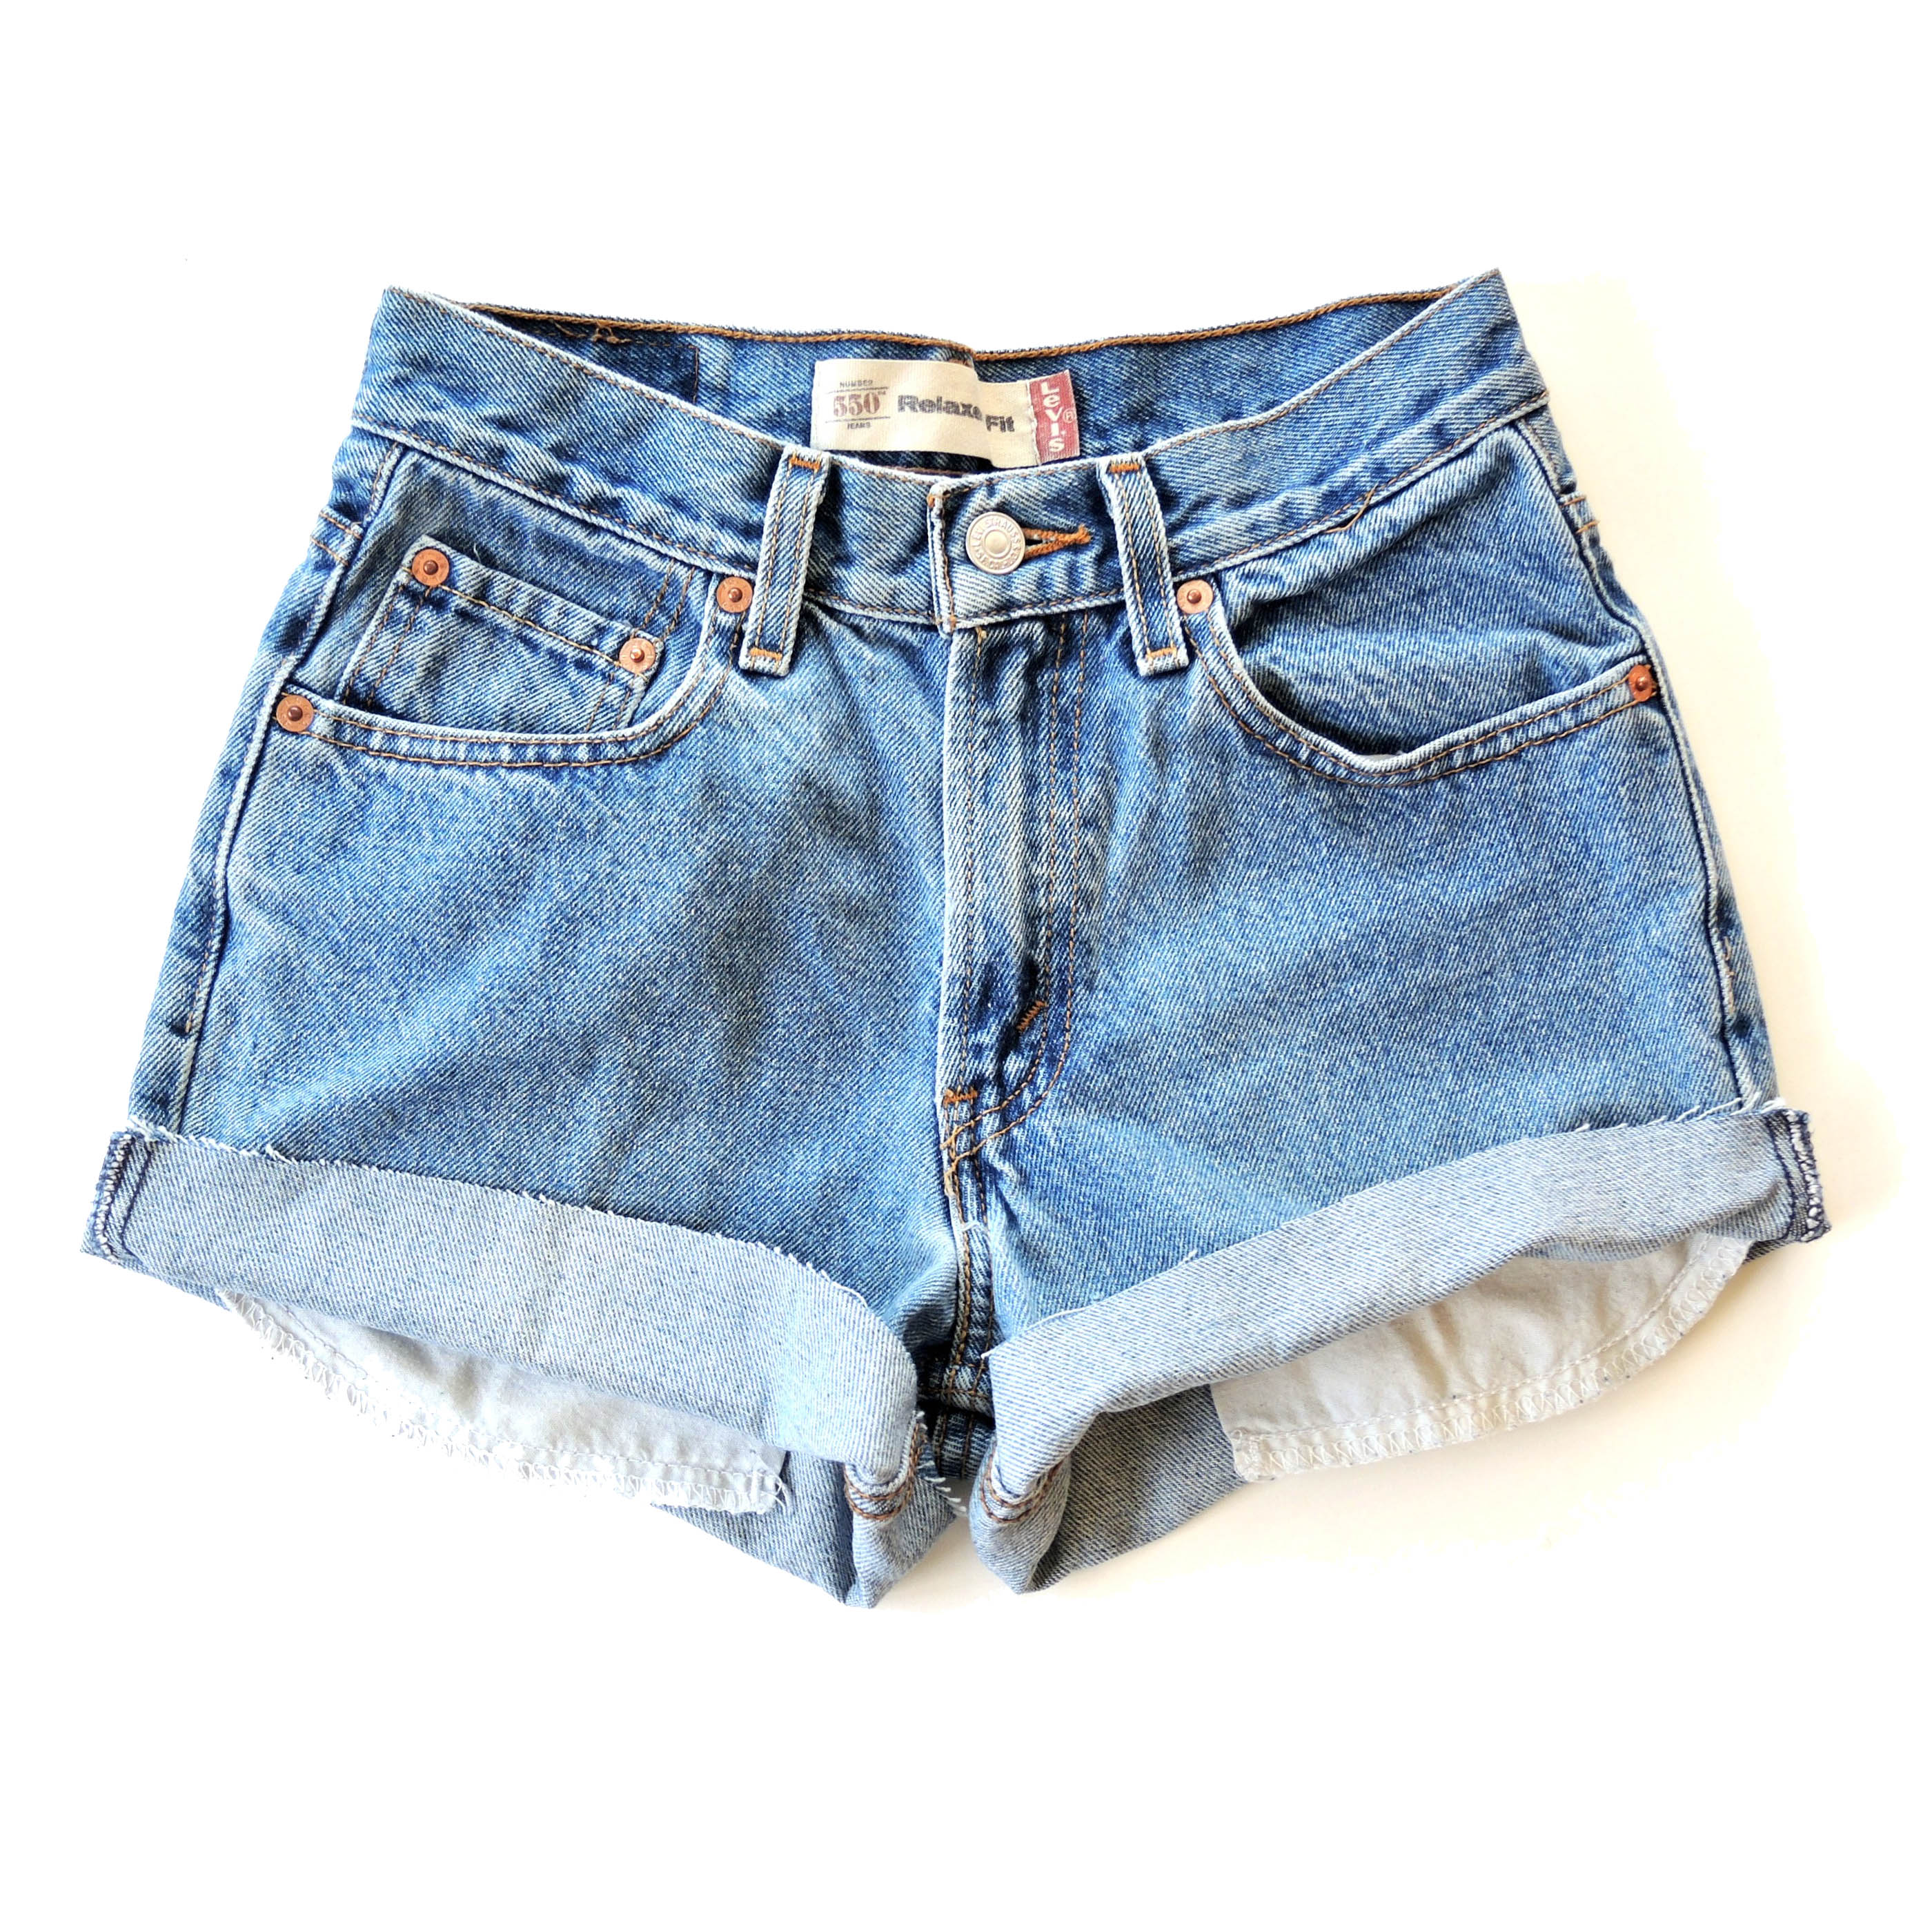 Find great deals on eBay for high wasted shorts. Shop with confidence.